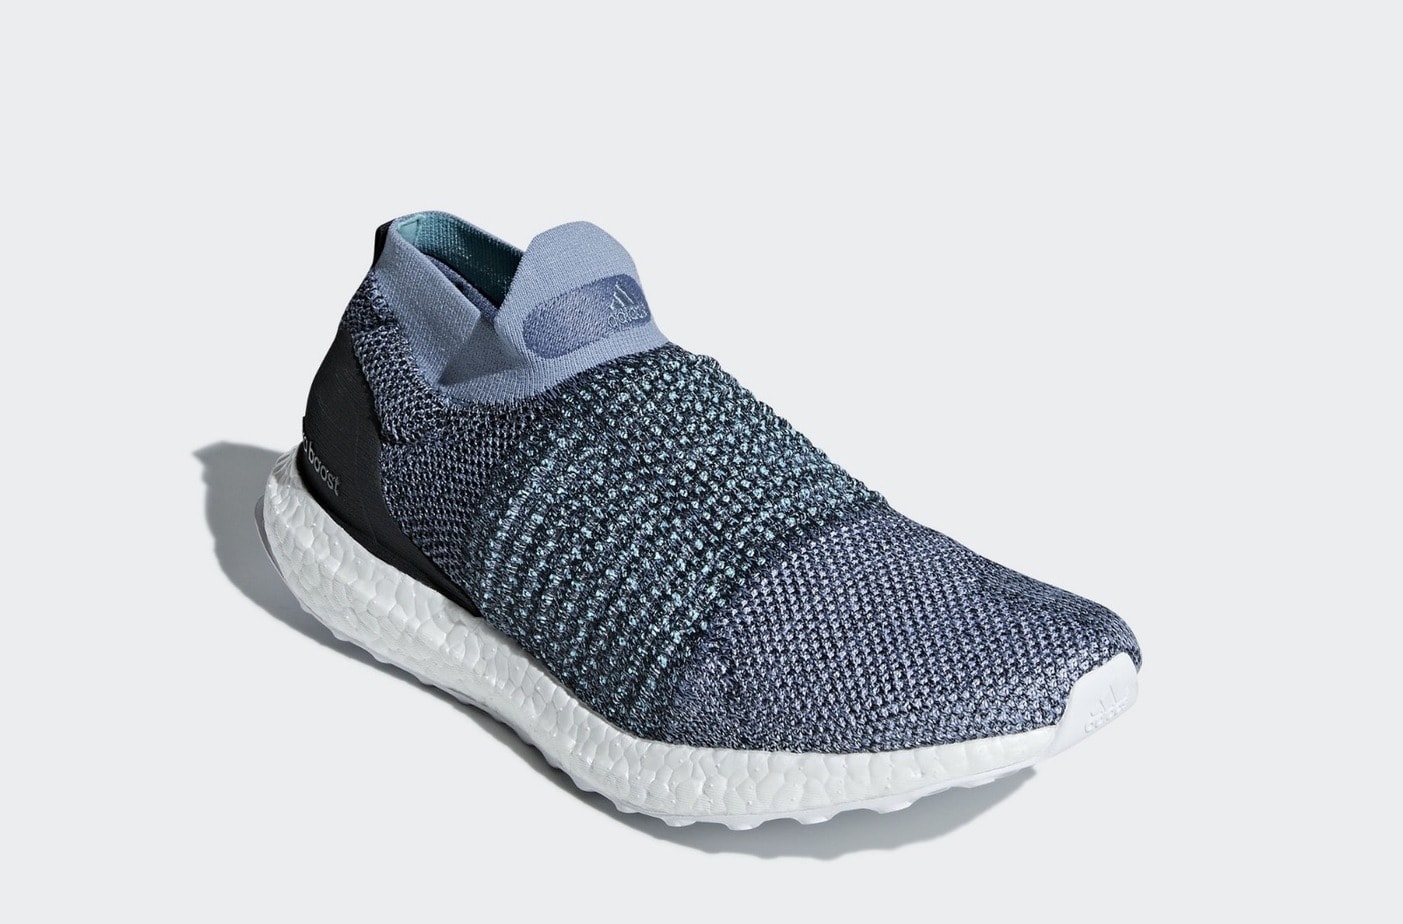 6af05e8075822 The adidas Ultra Boost Laceless Completes the Parley Collection this Summer